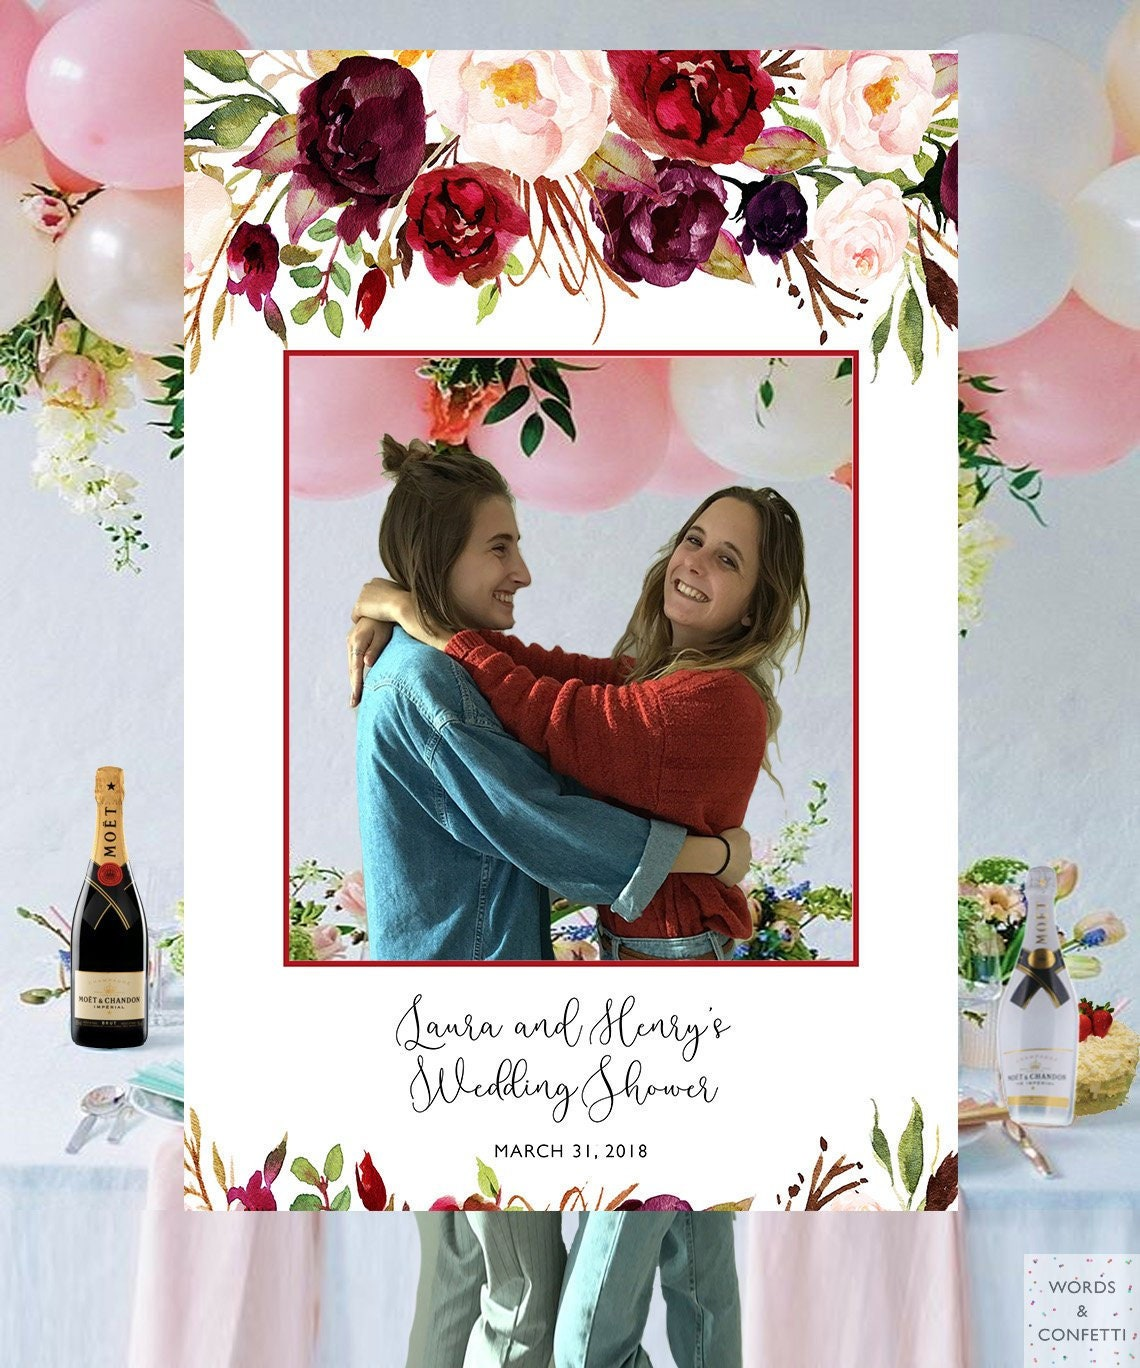 Wedding Shower Photo Prop Photo Booth Frame Photo Booth Etsy